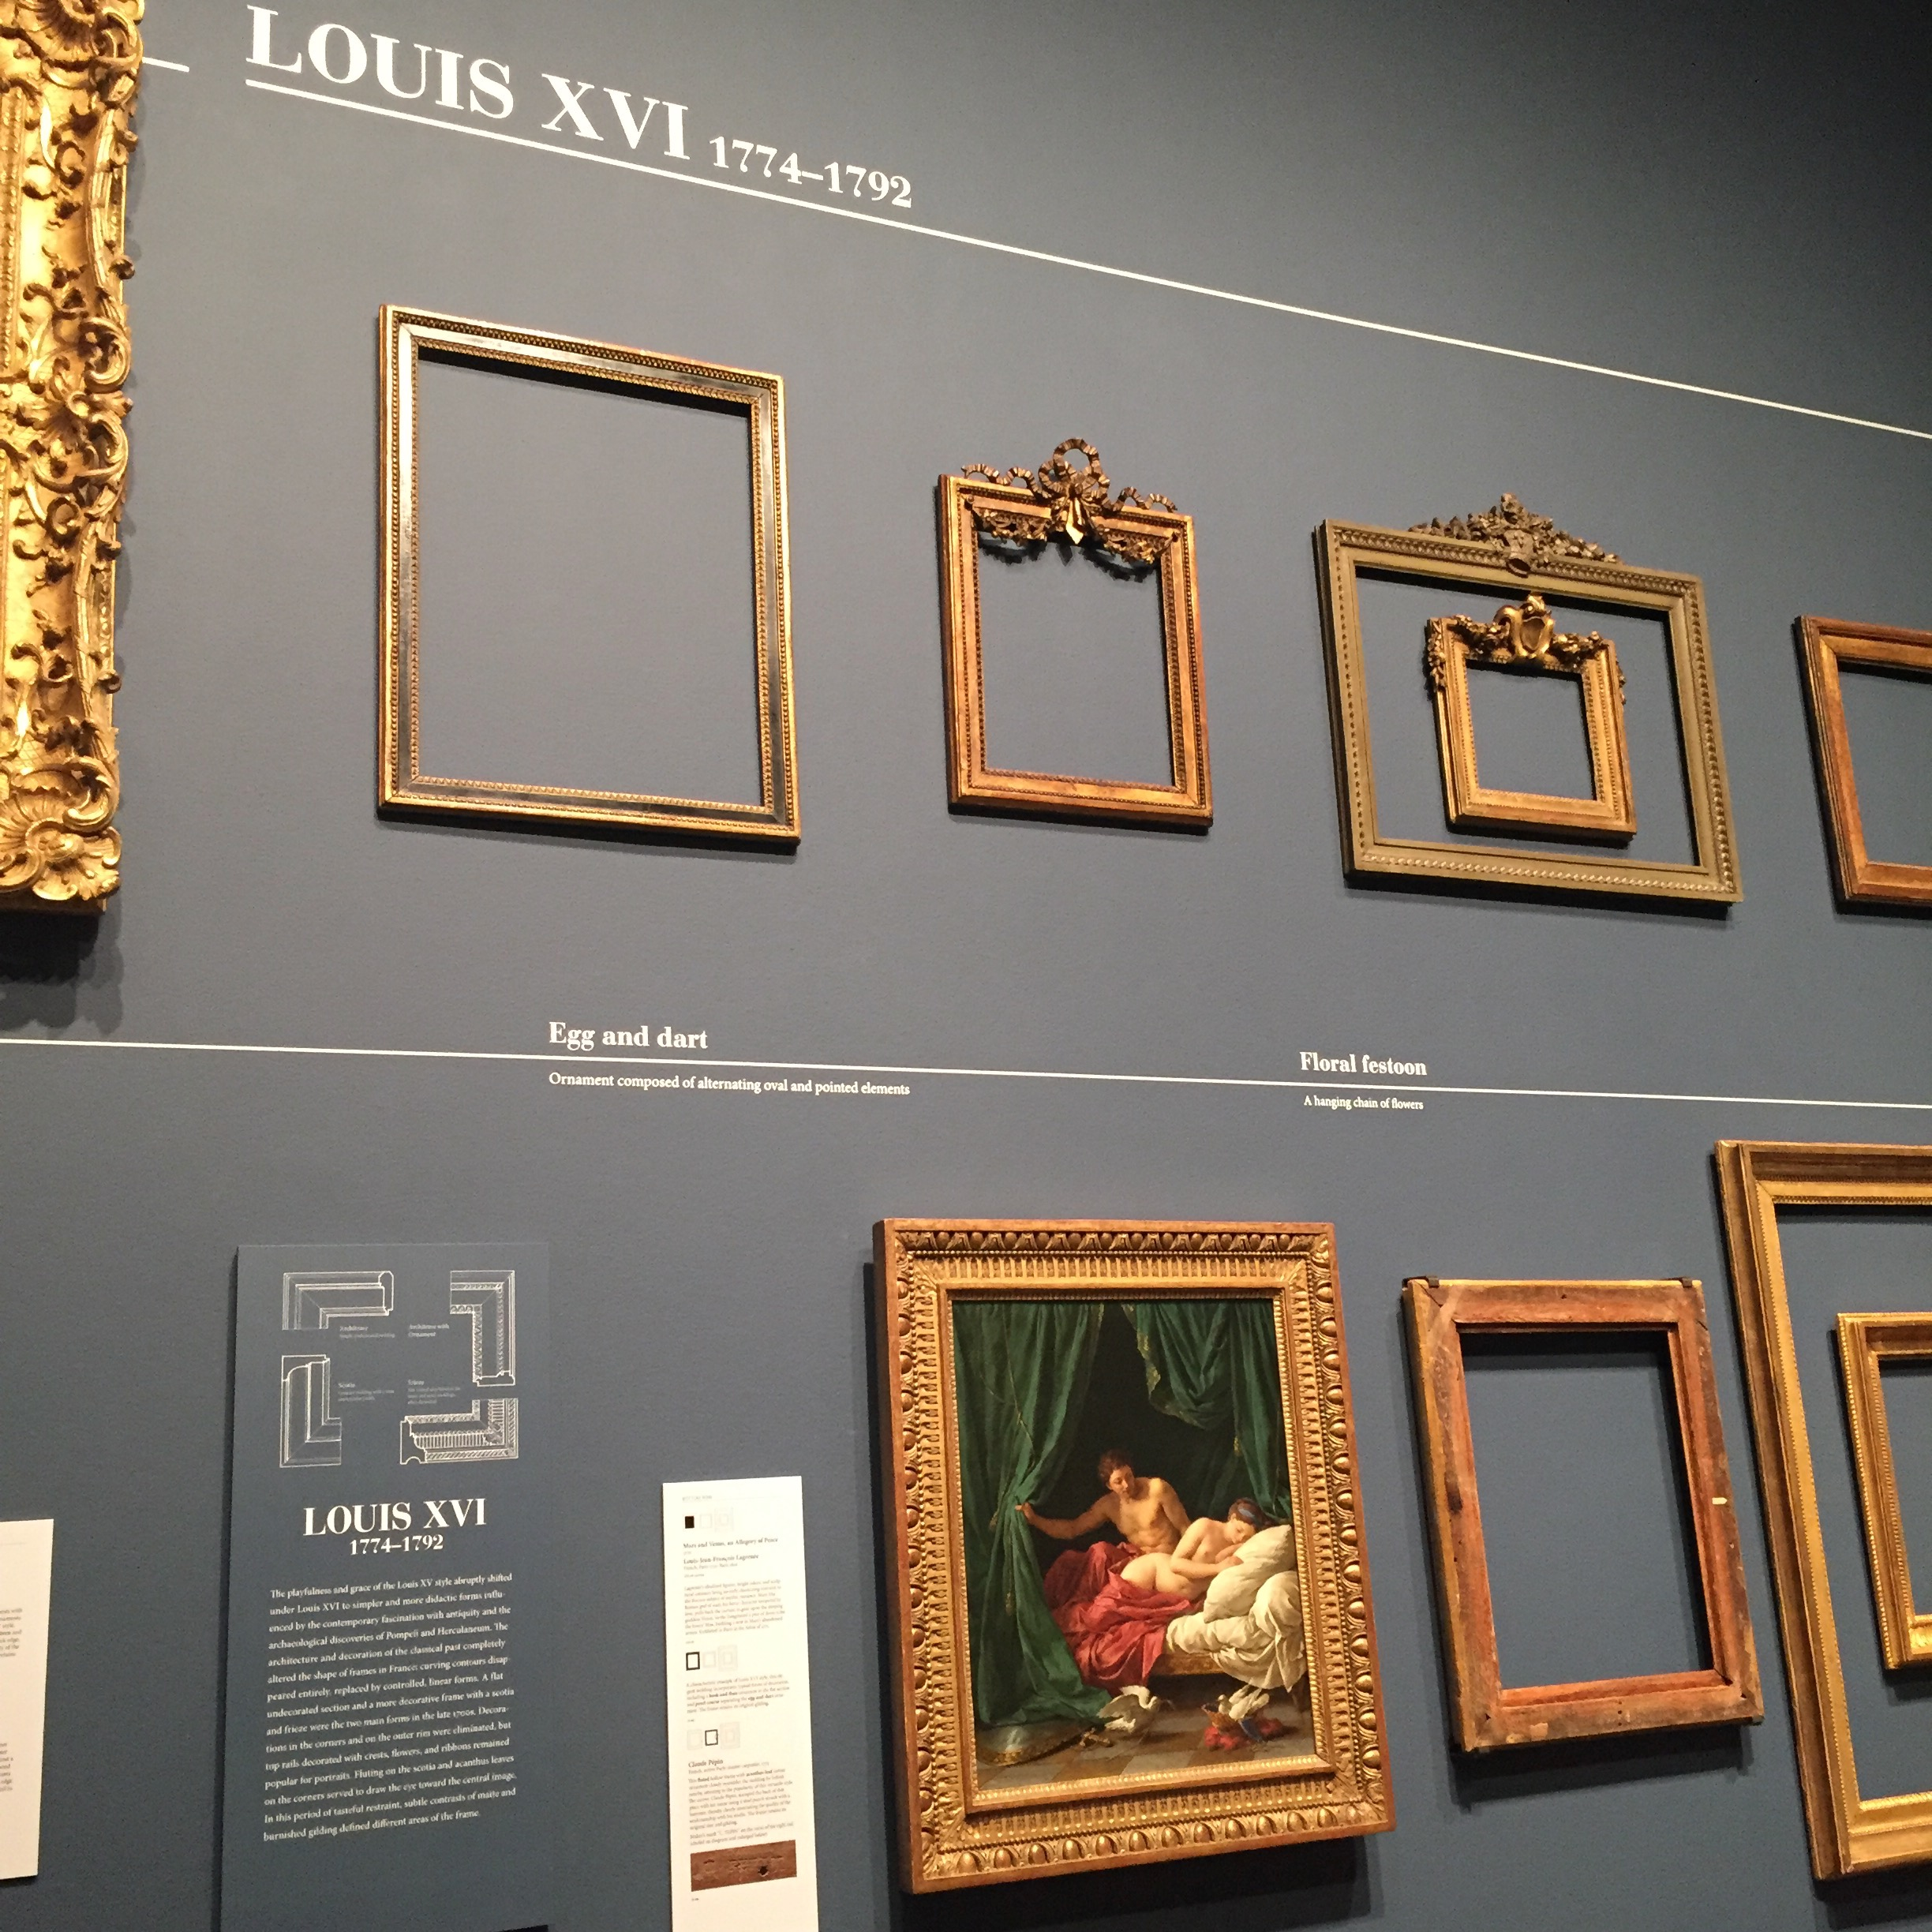 View of restrained, classically-derived Louis XVI frames at the exhibition 'Louis Style: French Frames, 1610-1792' at the J. Paul Getty Museum (September 15, 2015- January 3, 2016)